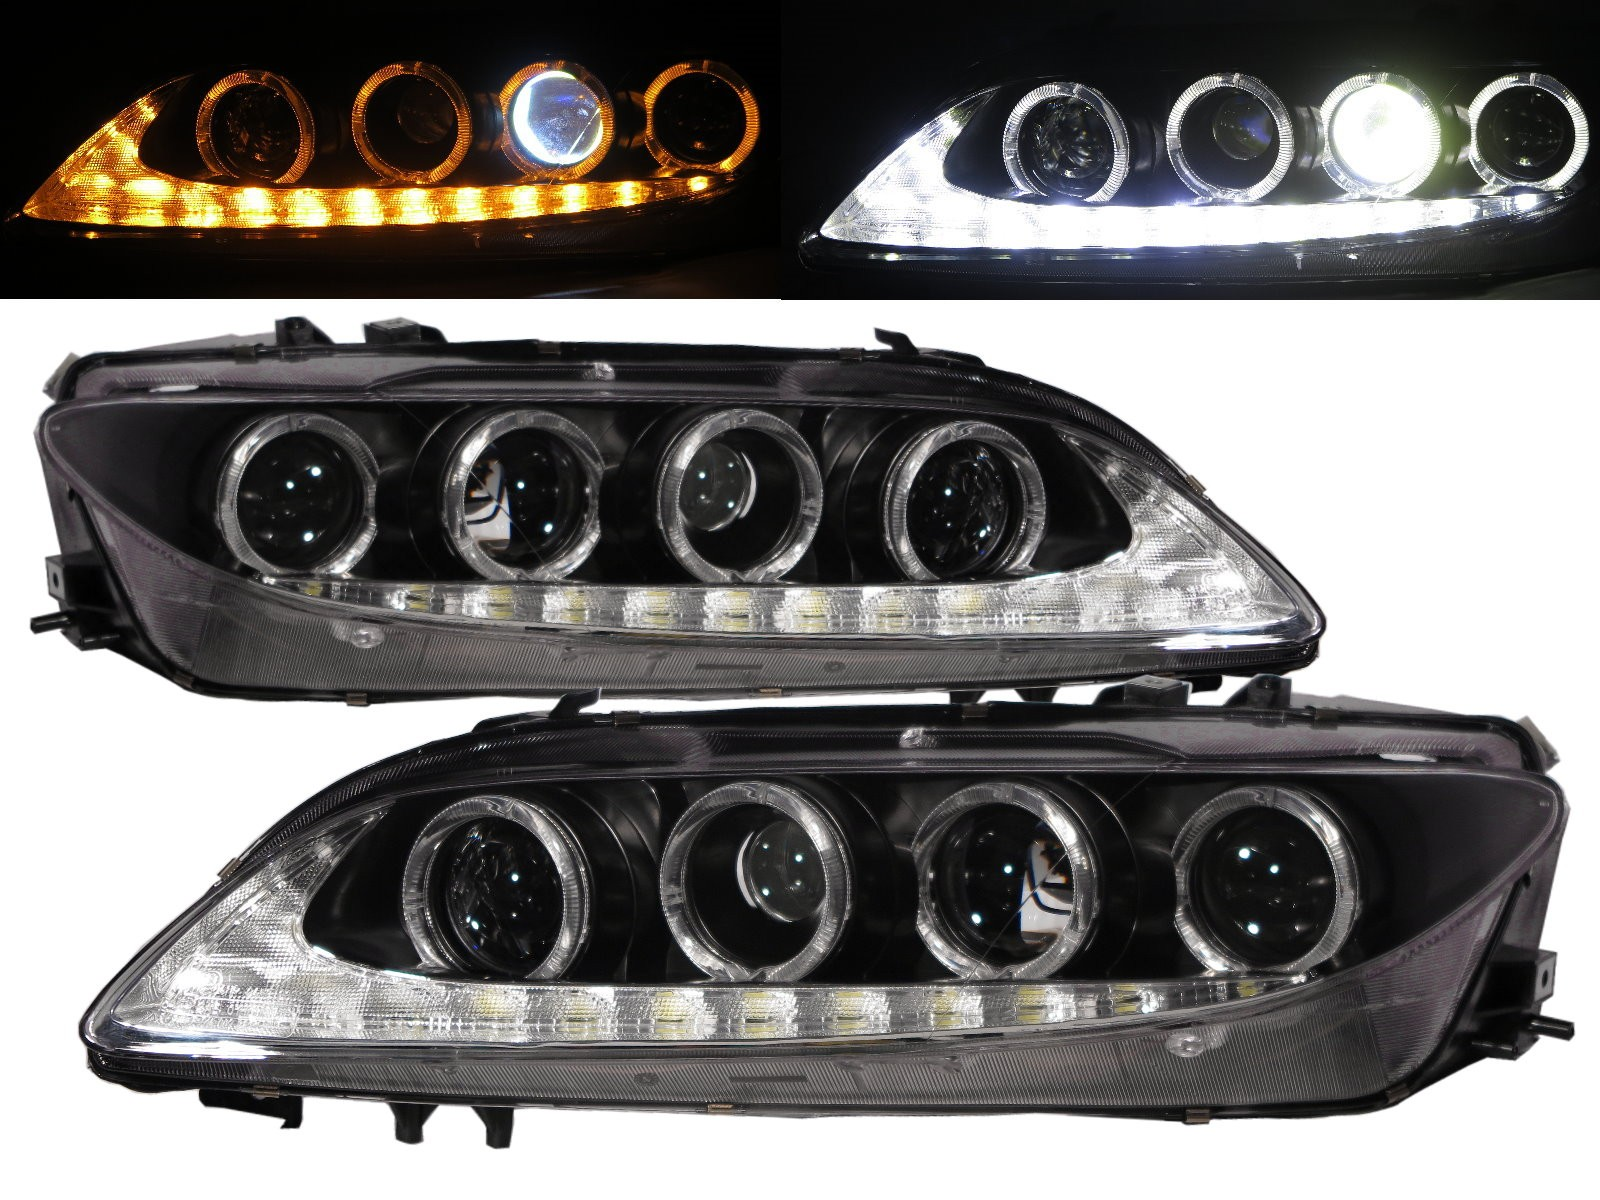 pictures pic sedan image headlight large picture mazda